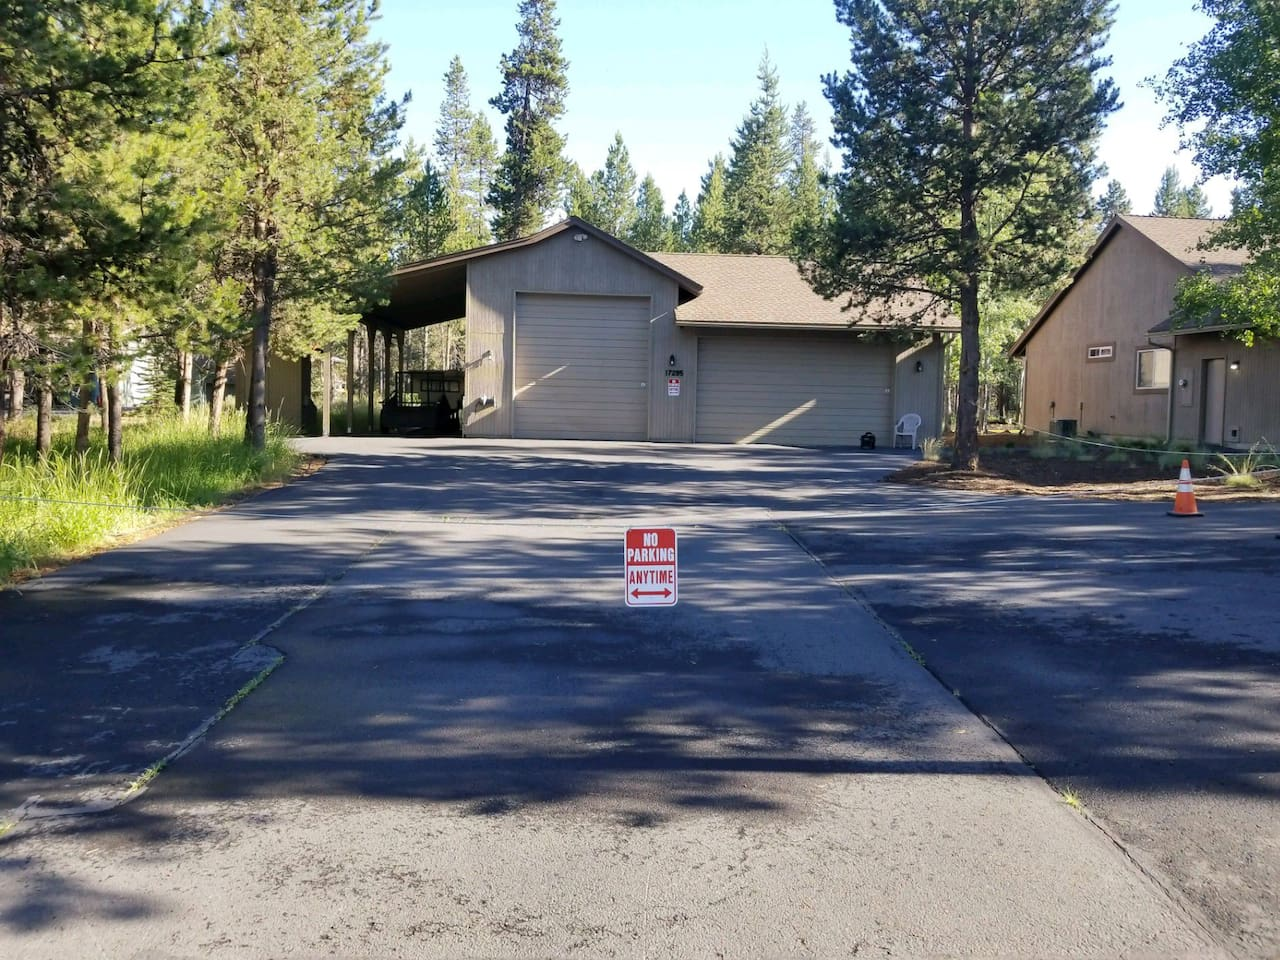 Detached Shop with Covererd Outdoor RV/Camp Trailer Parking.